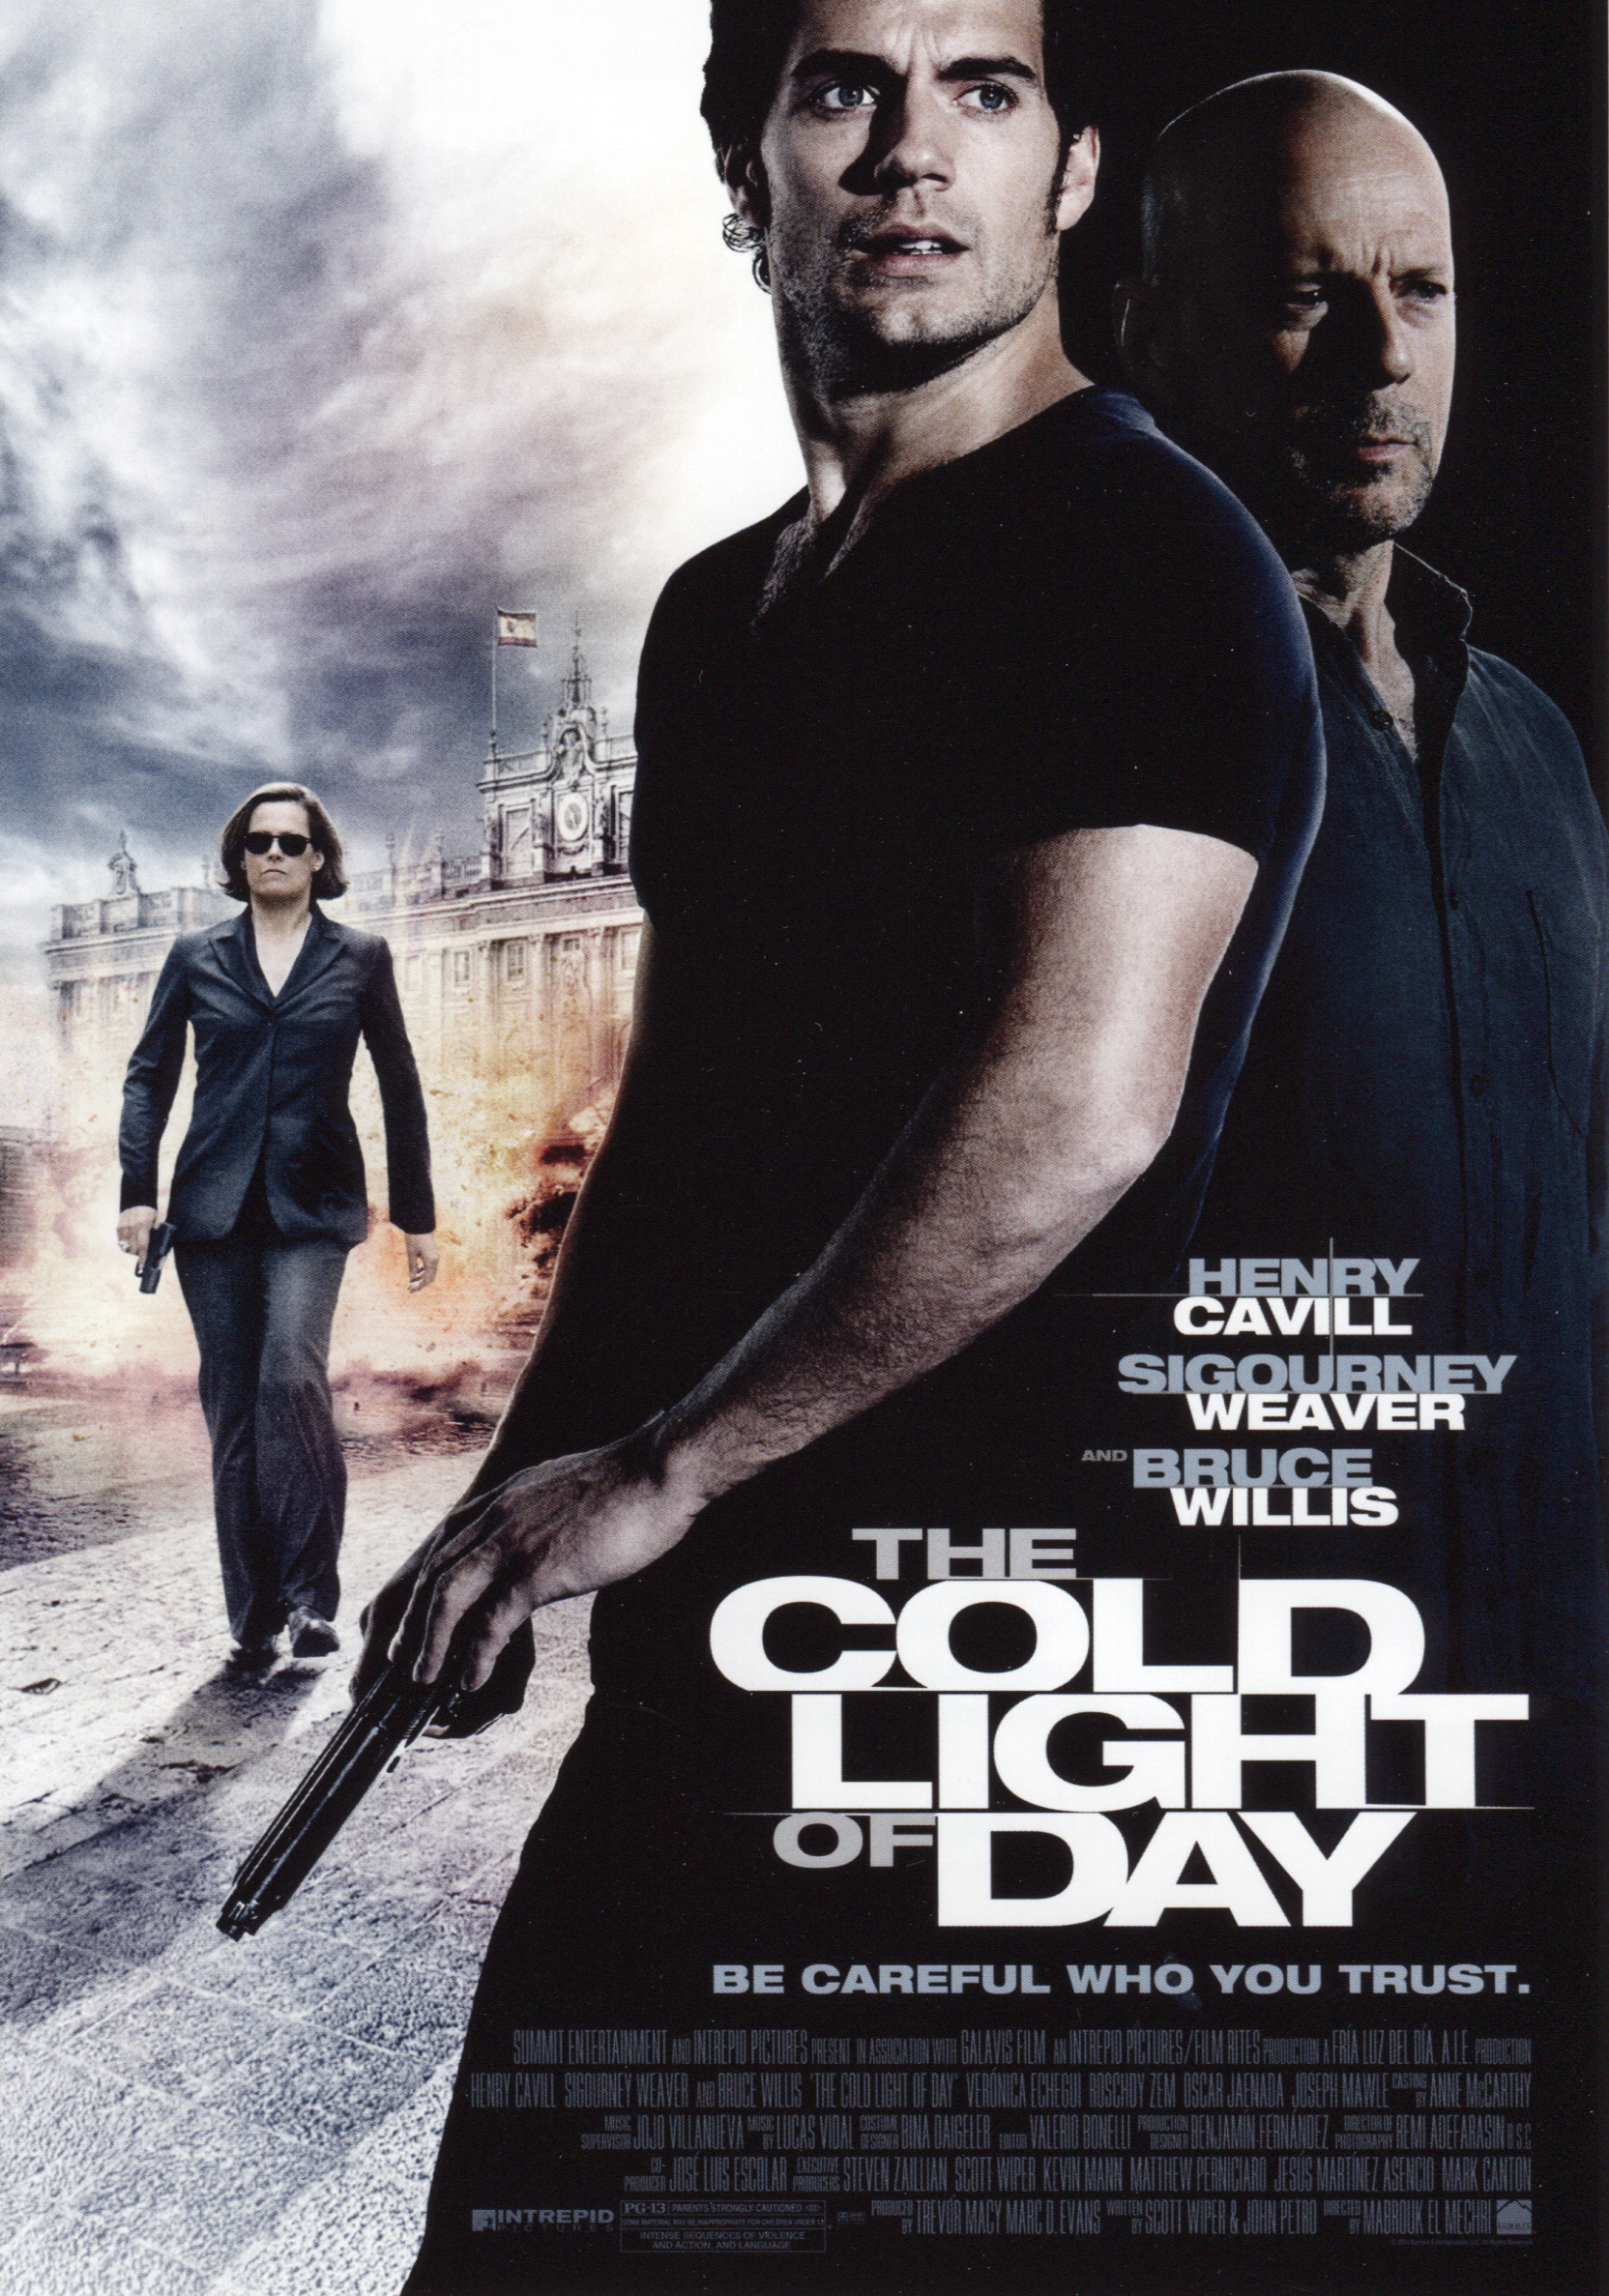 The Cold Light of Day - Movie Poster #1 (Original)